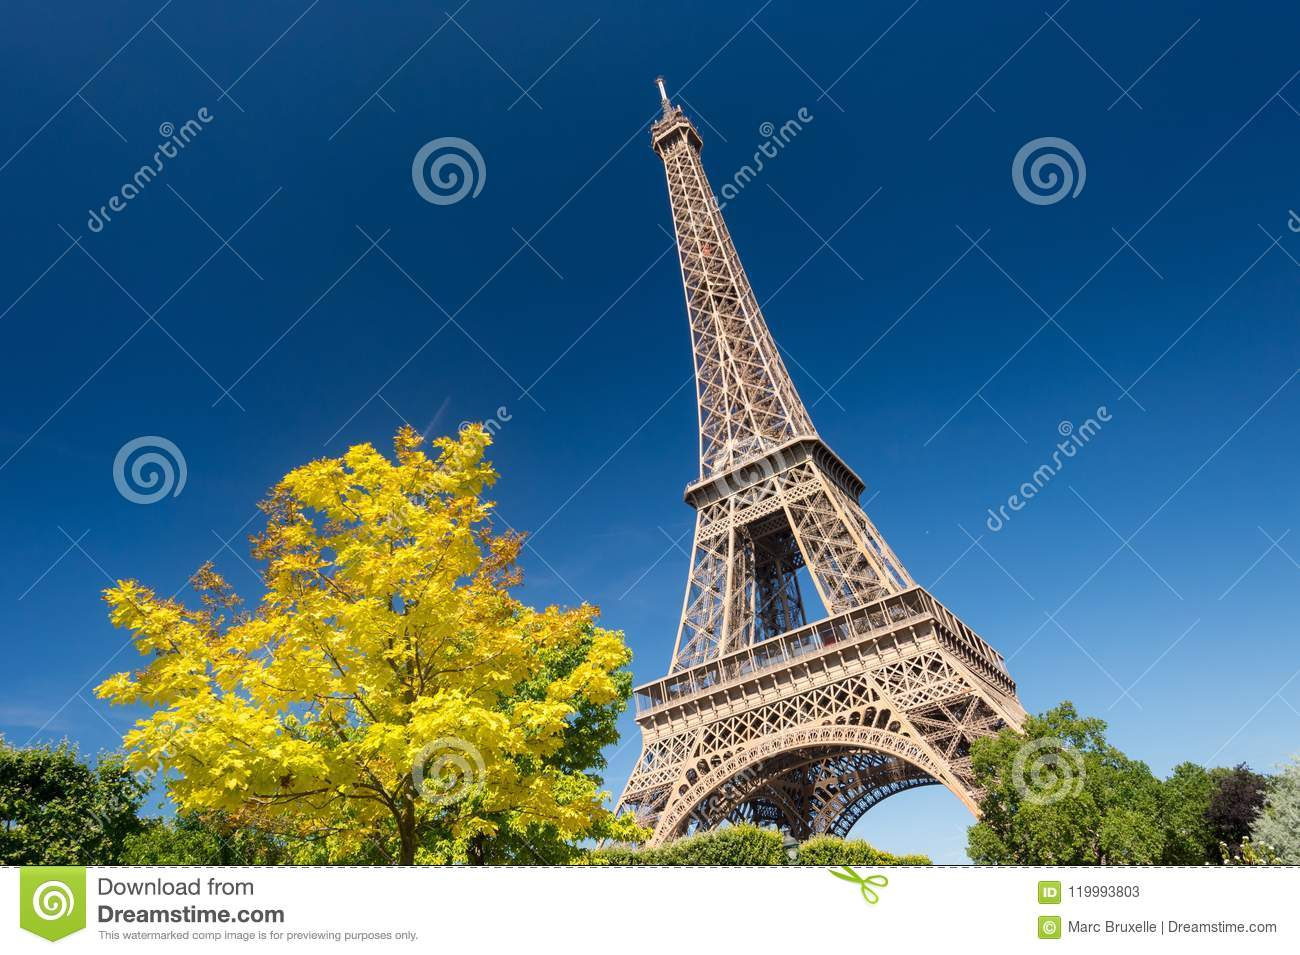 Eiffel Tower from the Champ de Mars gardens in summer.